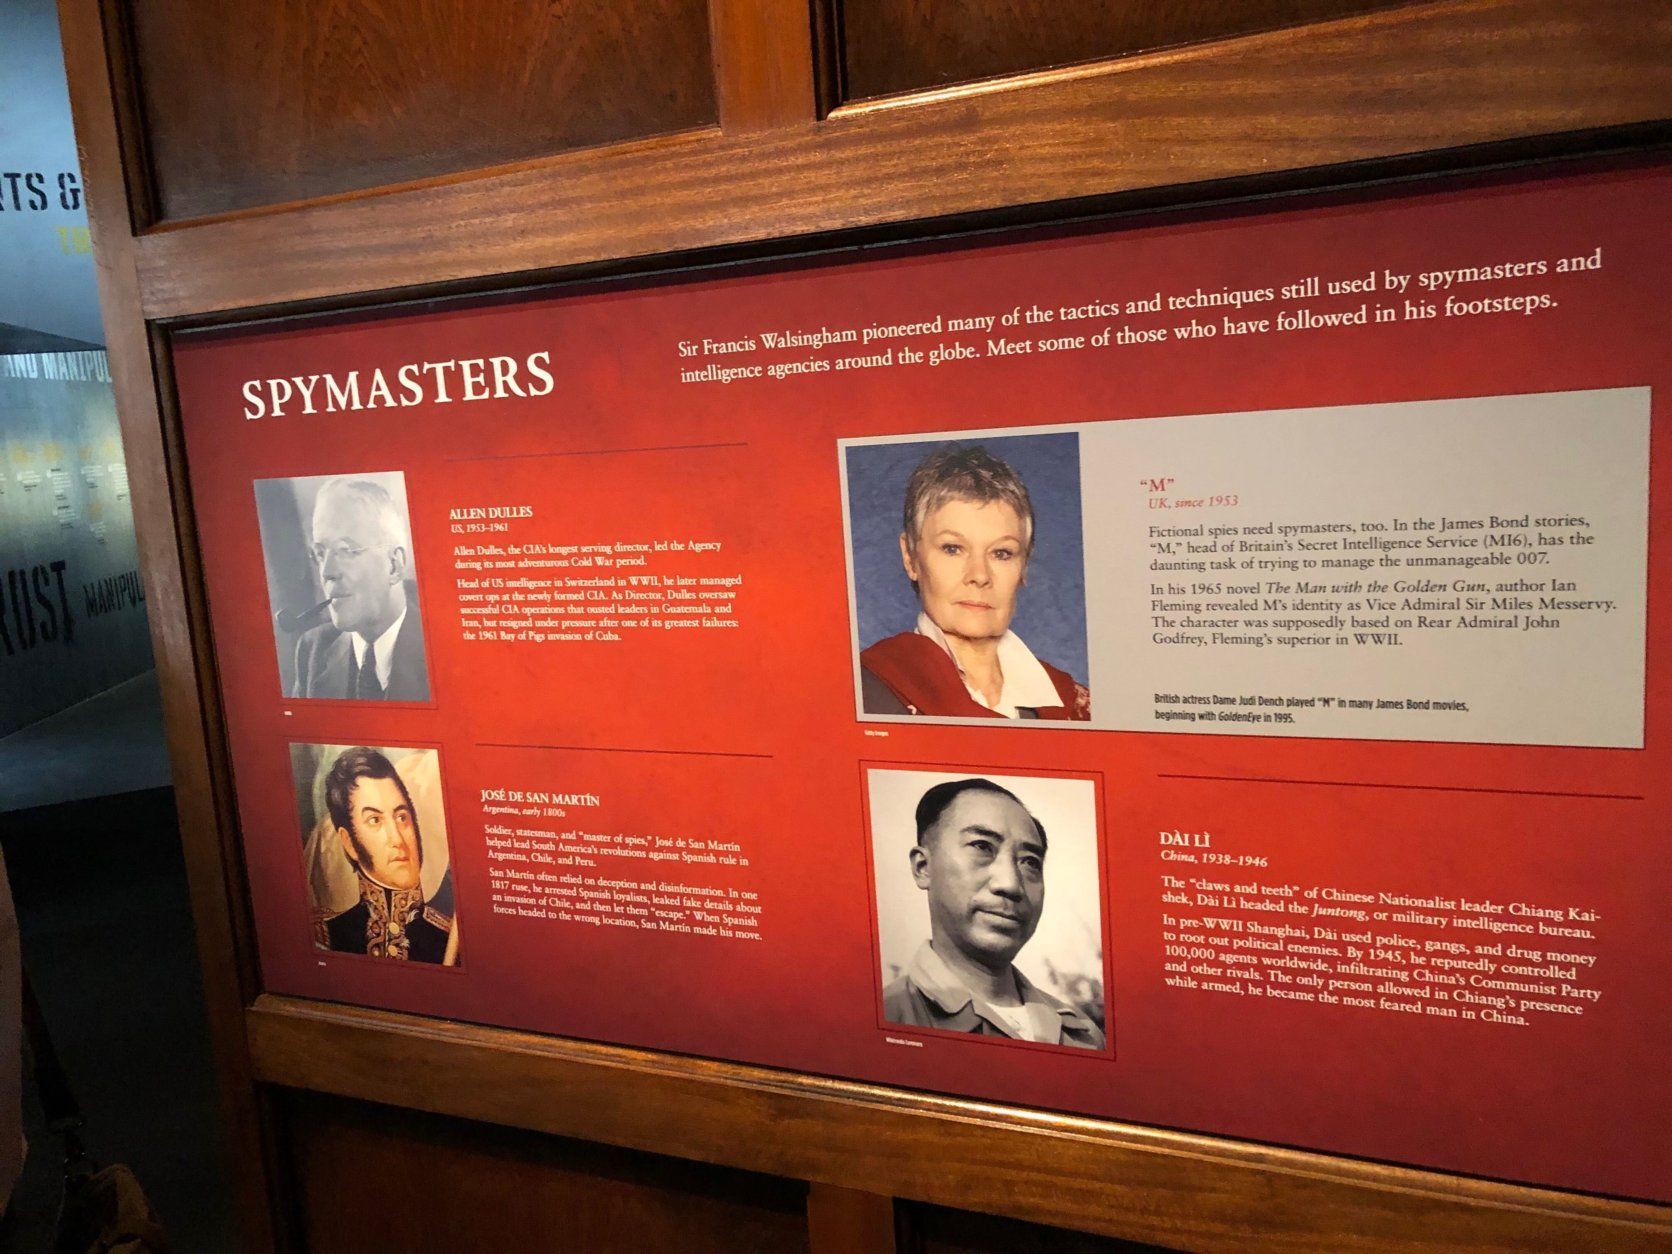 Information about notable spymasters (both real and fictional) around the world at the new Spy Museum. (WTOP/J.J. Green)